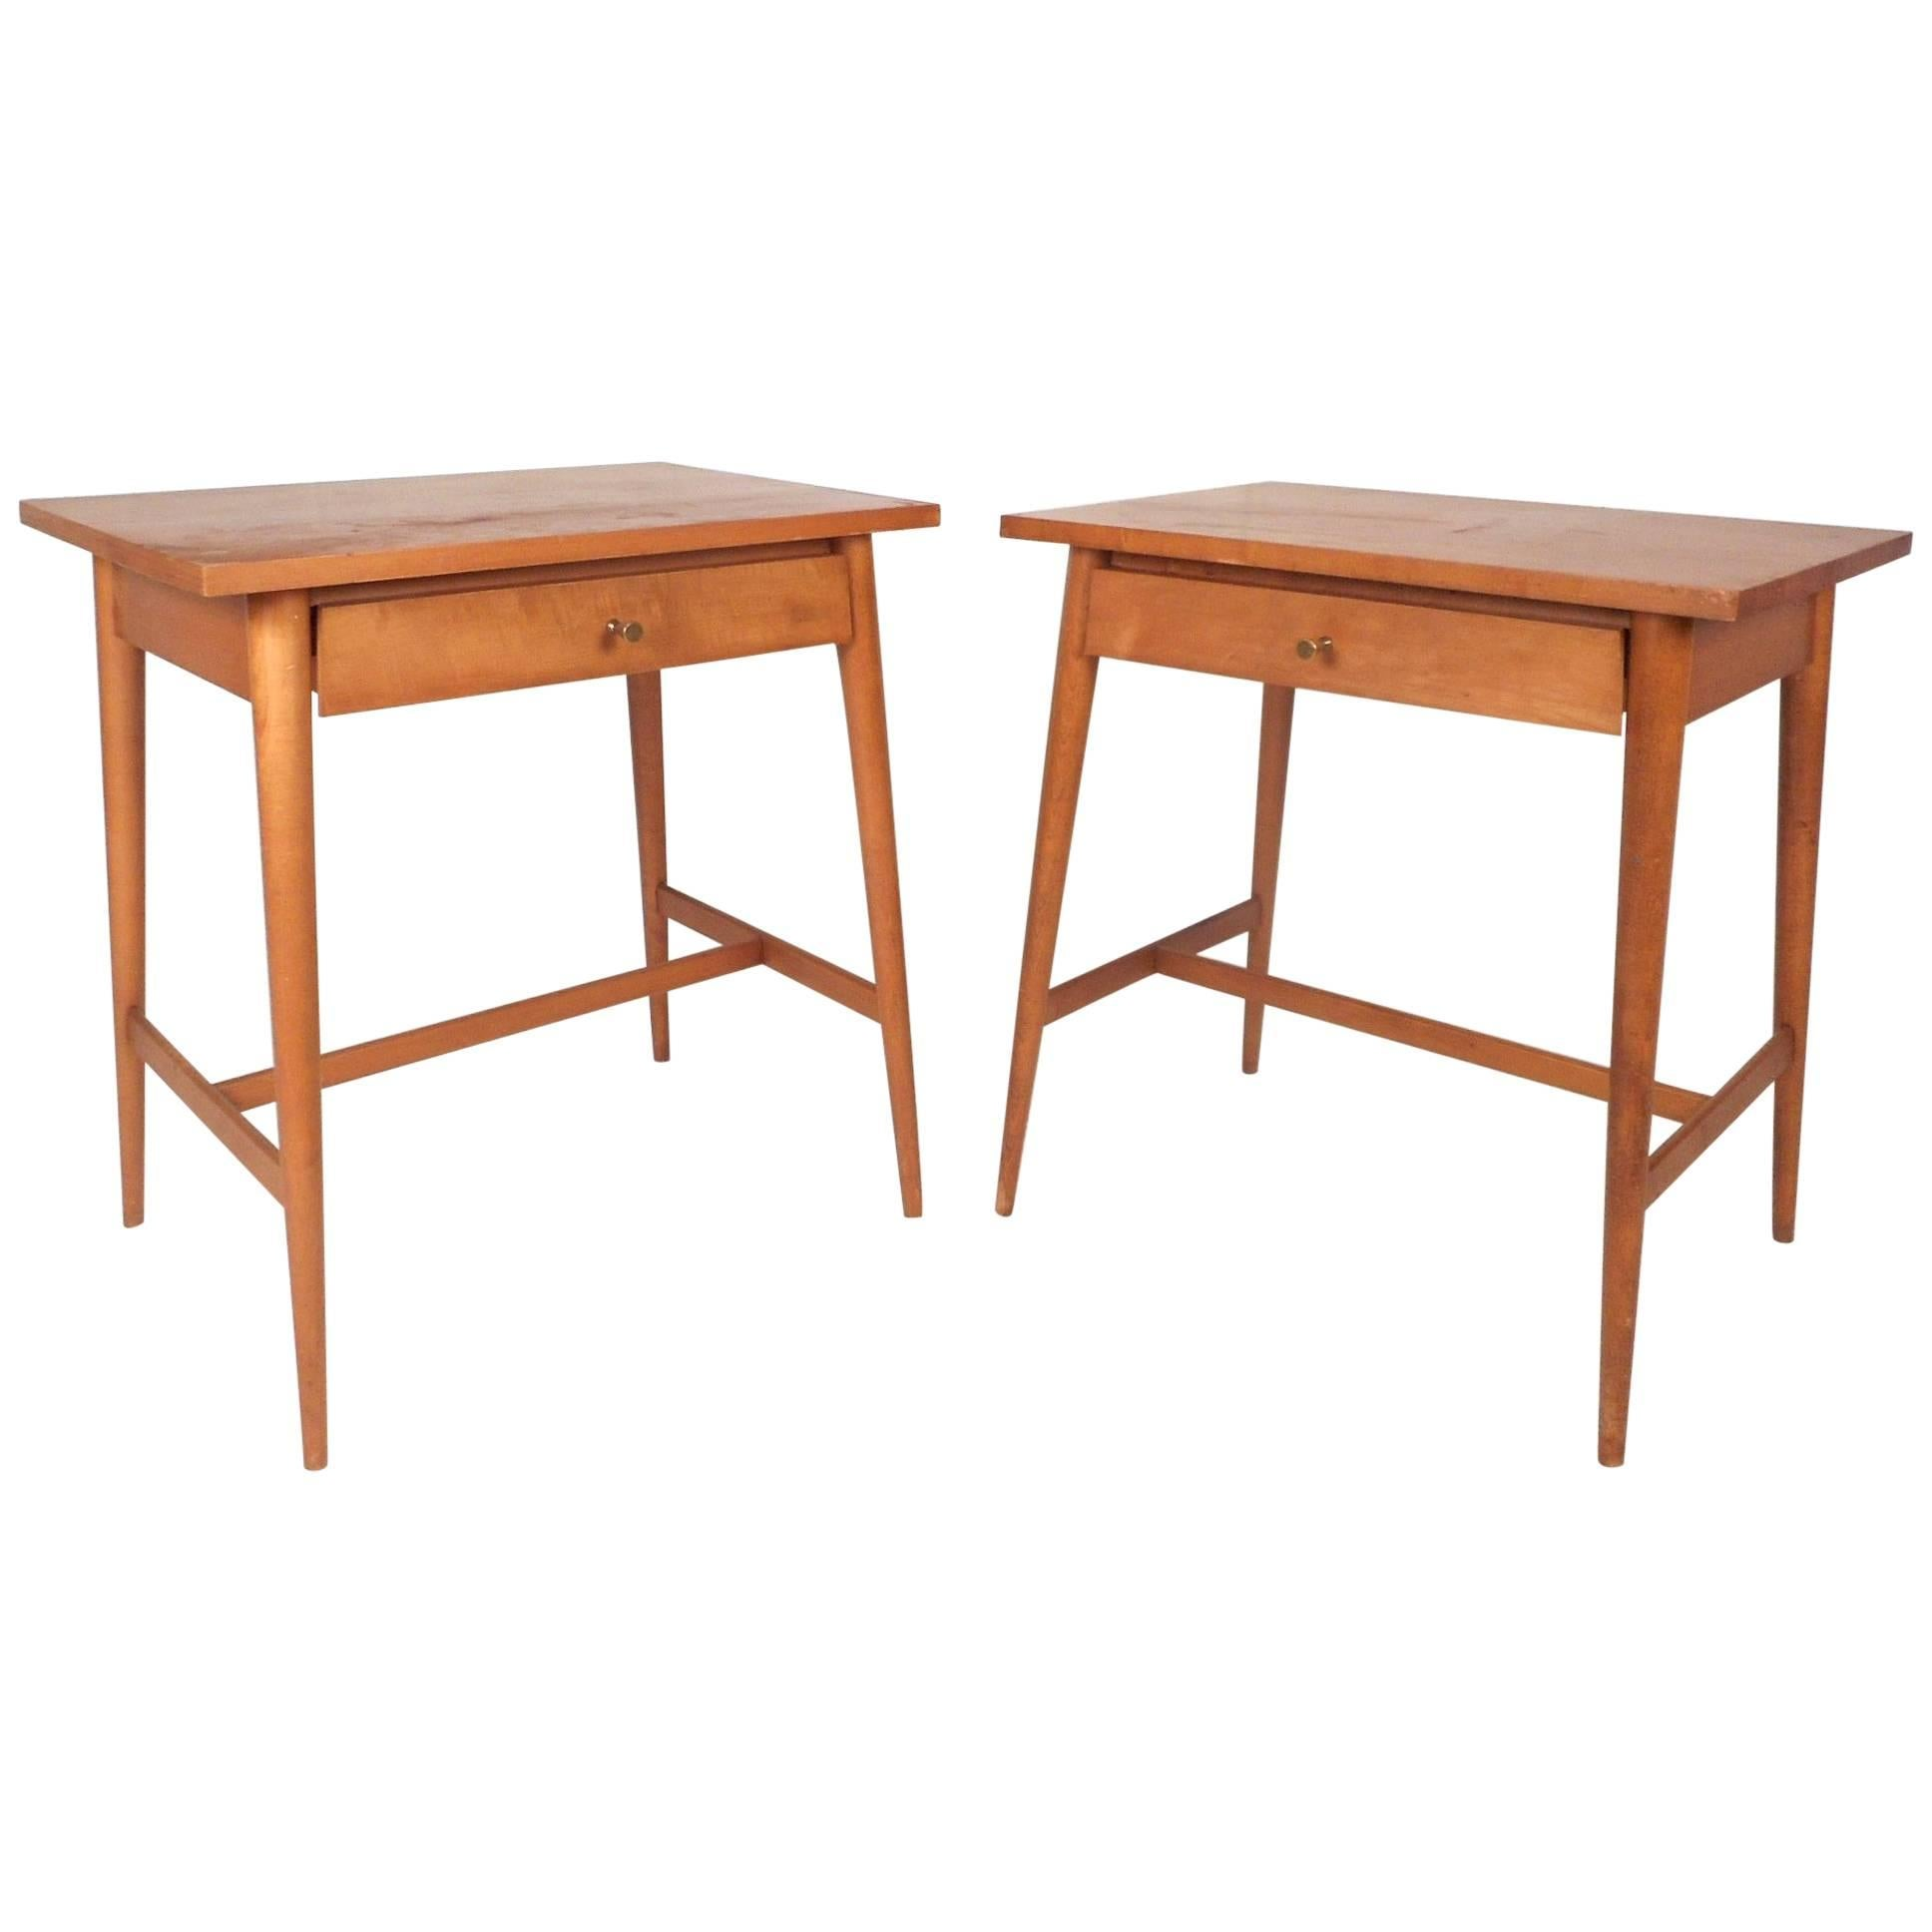 Pair of Mid-Century Modern End Tables by Paul McCobb for Planner Group